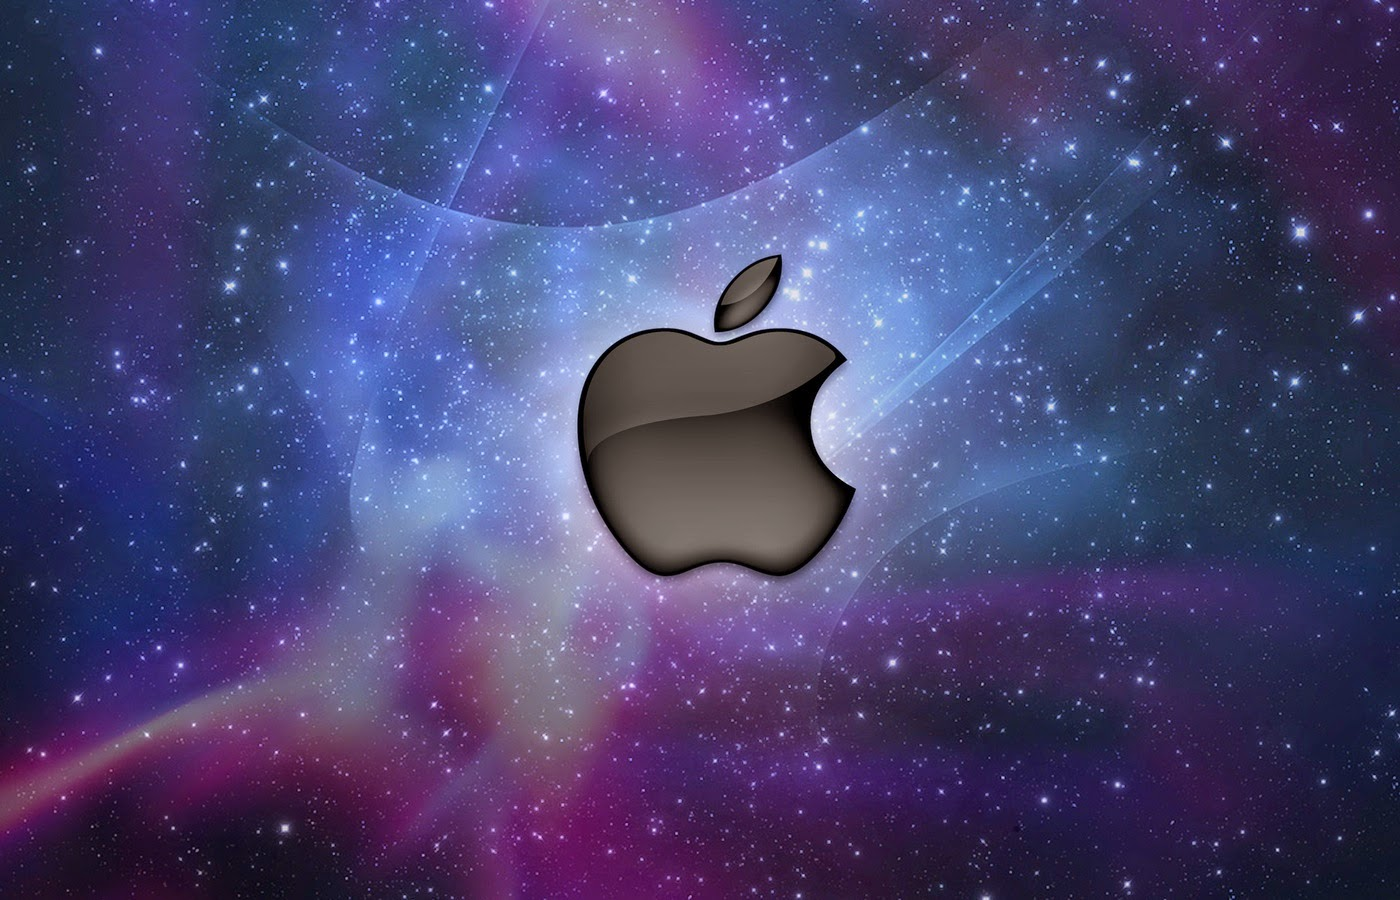 cool apple logos hd. apple macintosh logo hd wallpapers cool logos hd